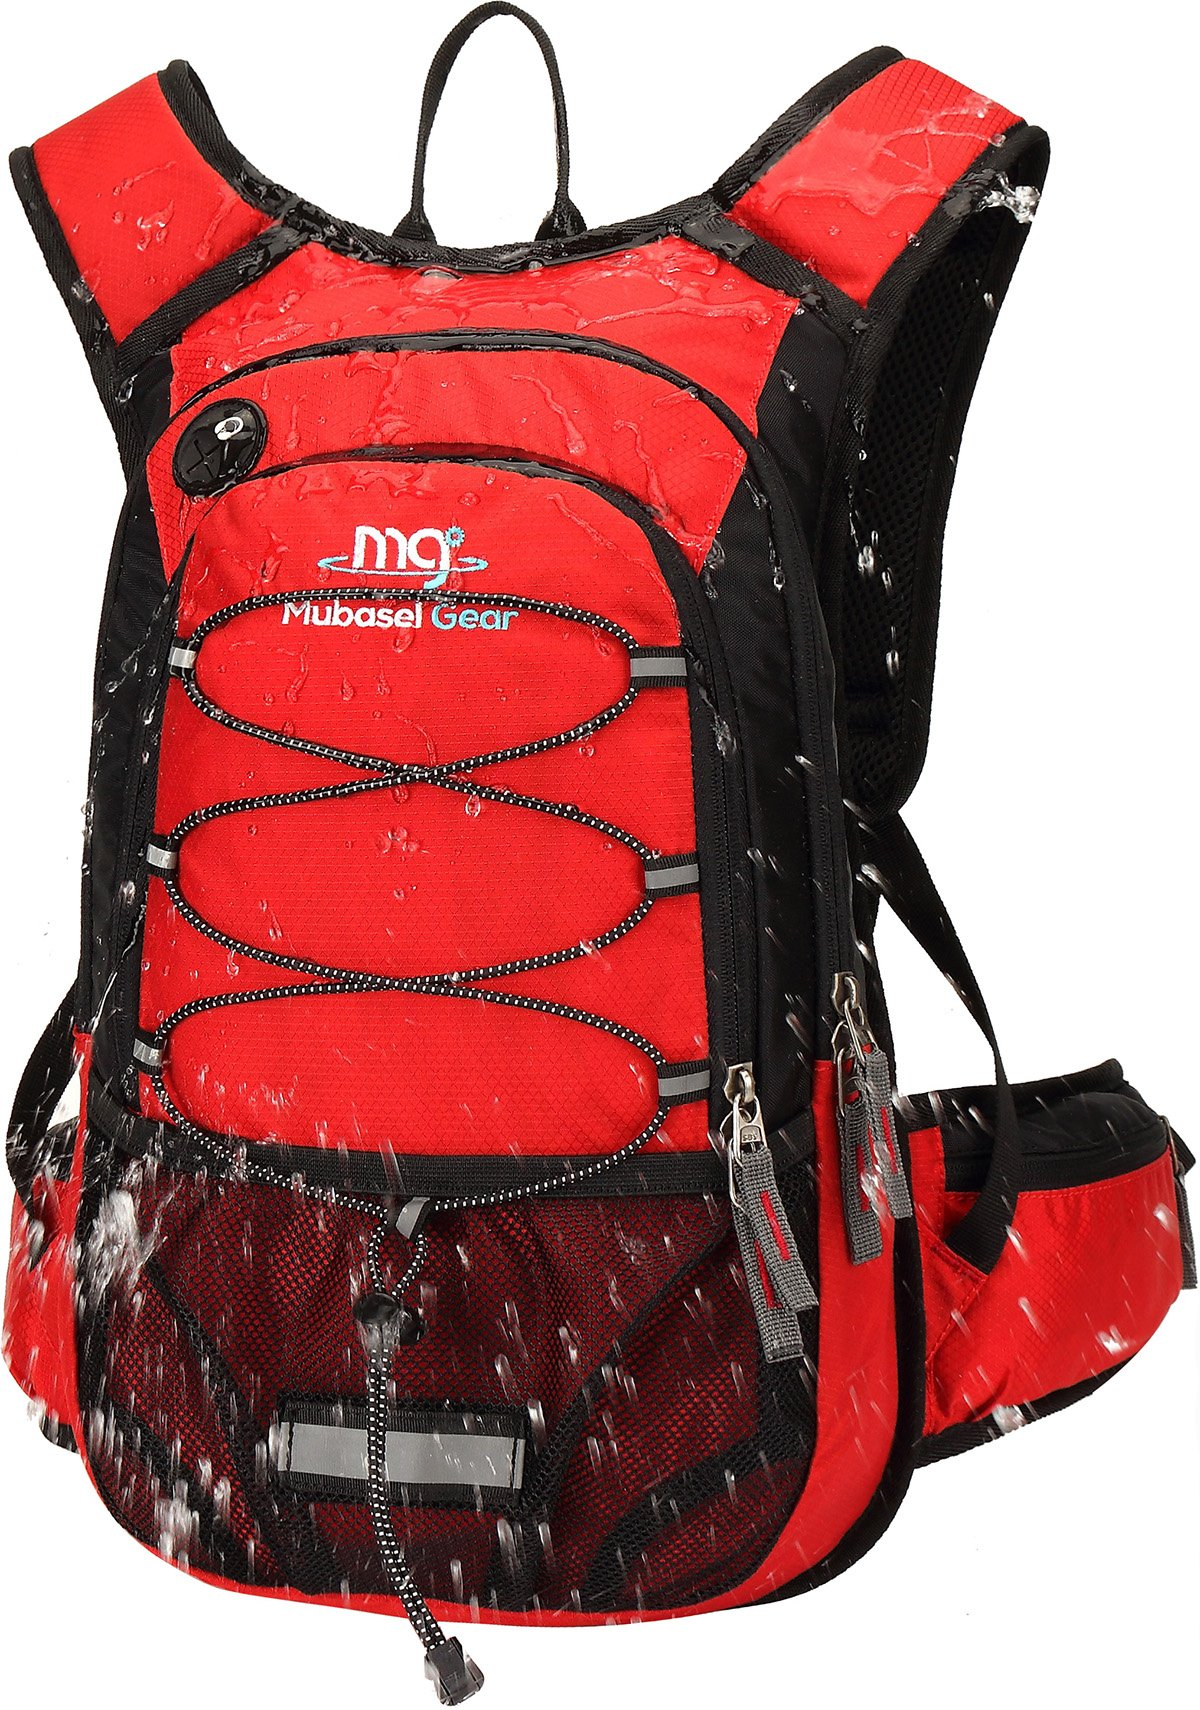 Mubasel Gear Insulated Hydration Backpack with 2L BPA Free Bladder - Keeps Liquid Cool up to 5 Hours – Waterproof Pack for Running, Hiking, Cycling, Camping (Red)